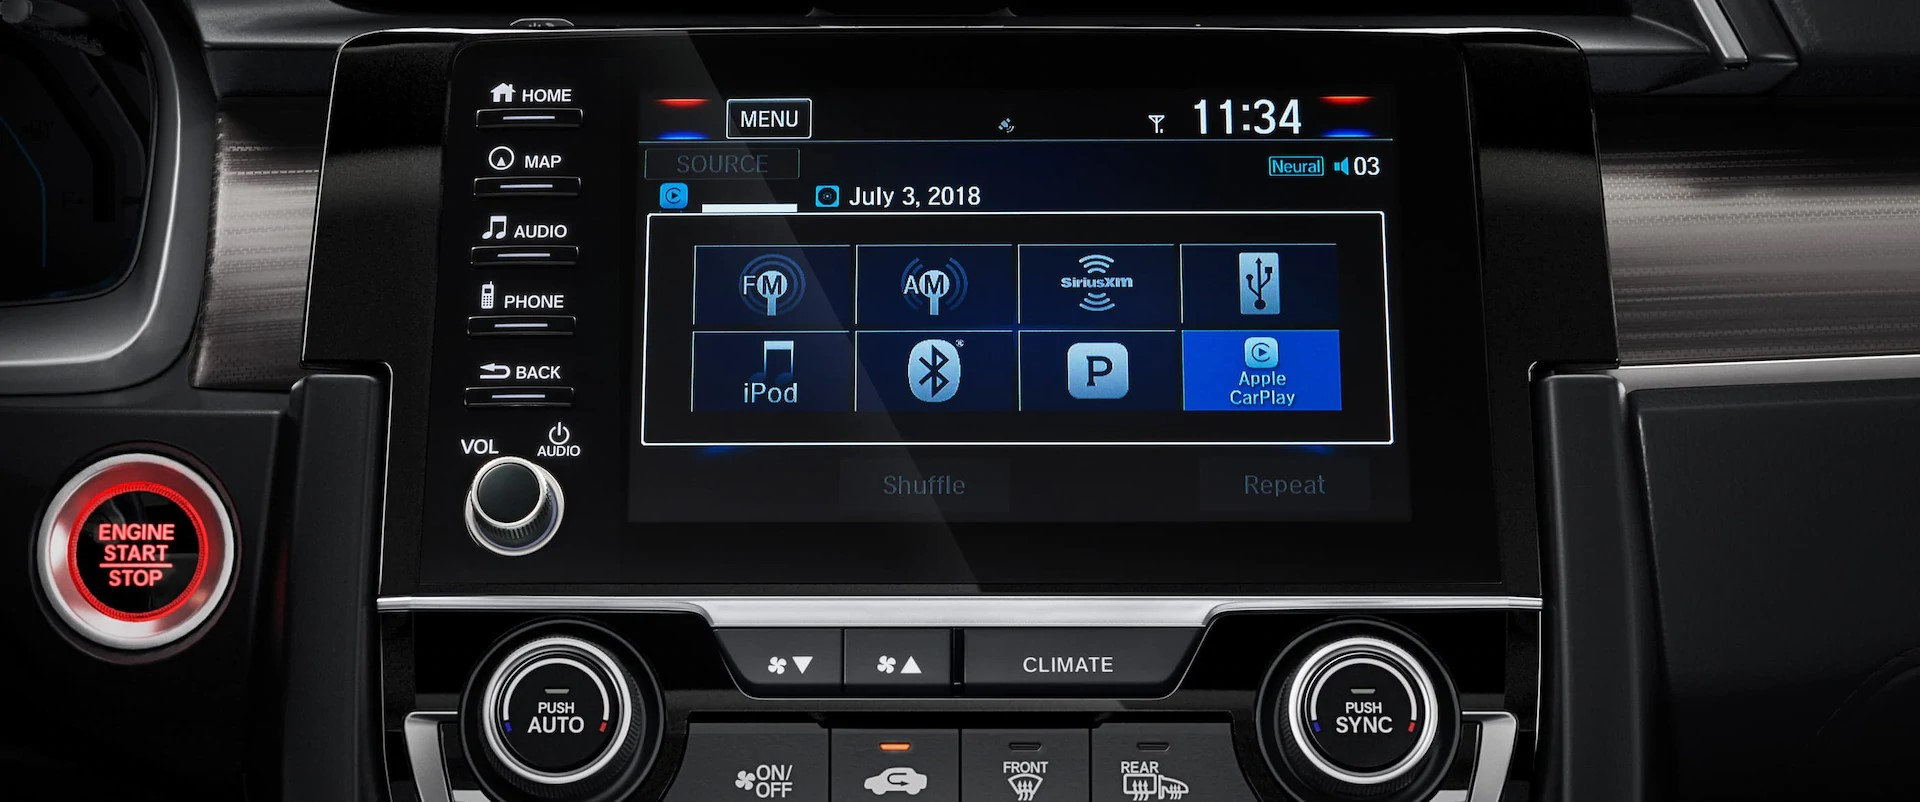 Tap Into All Your Media Easily in the 2020 Civic!